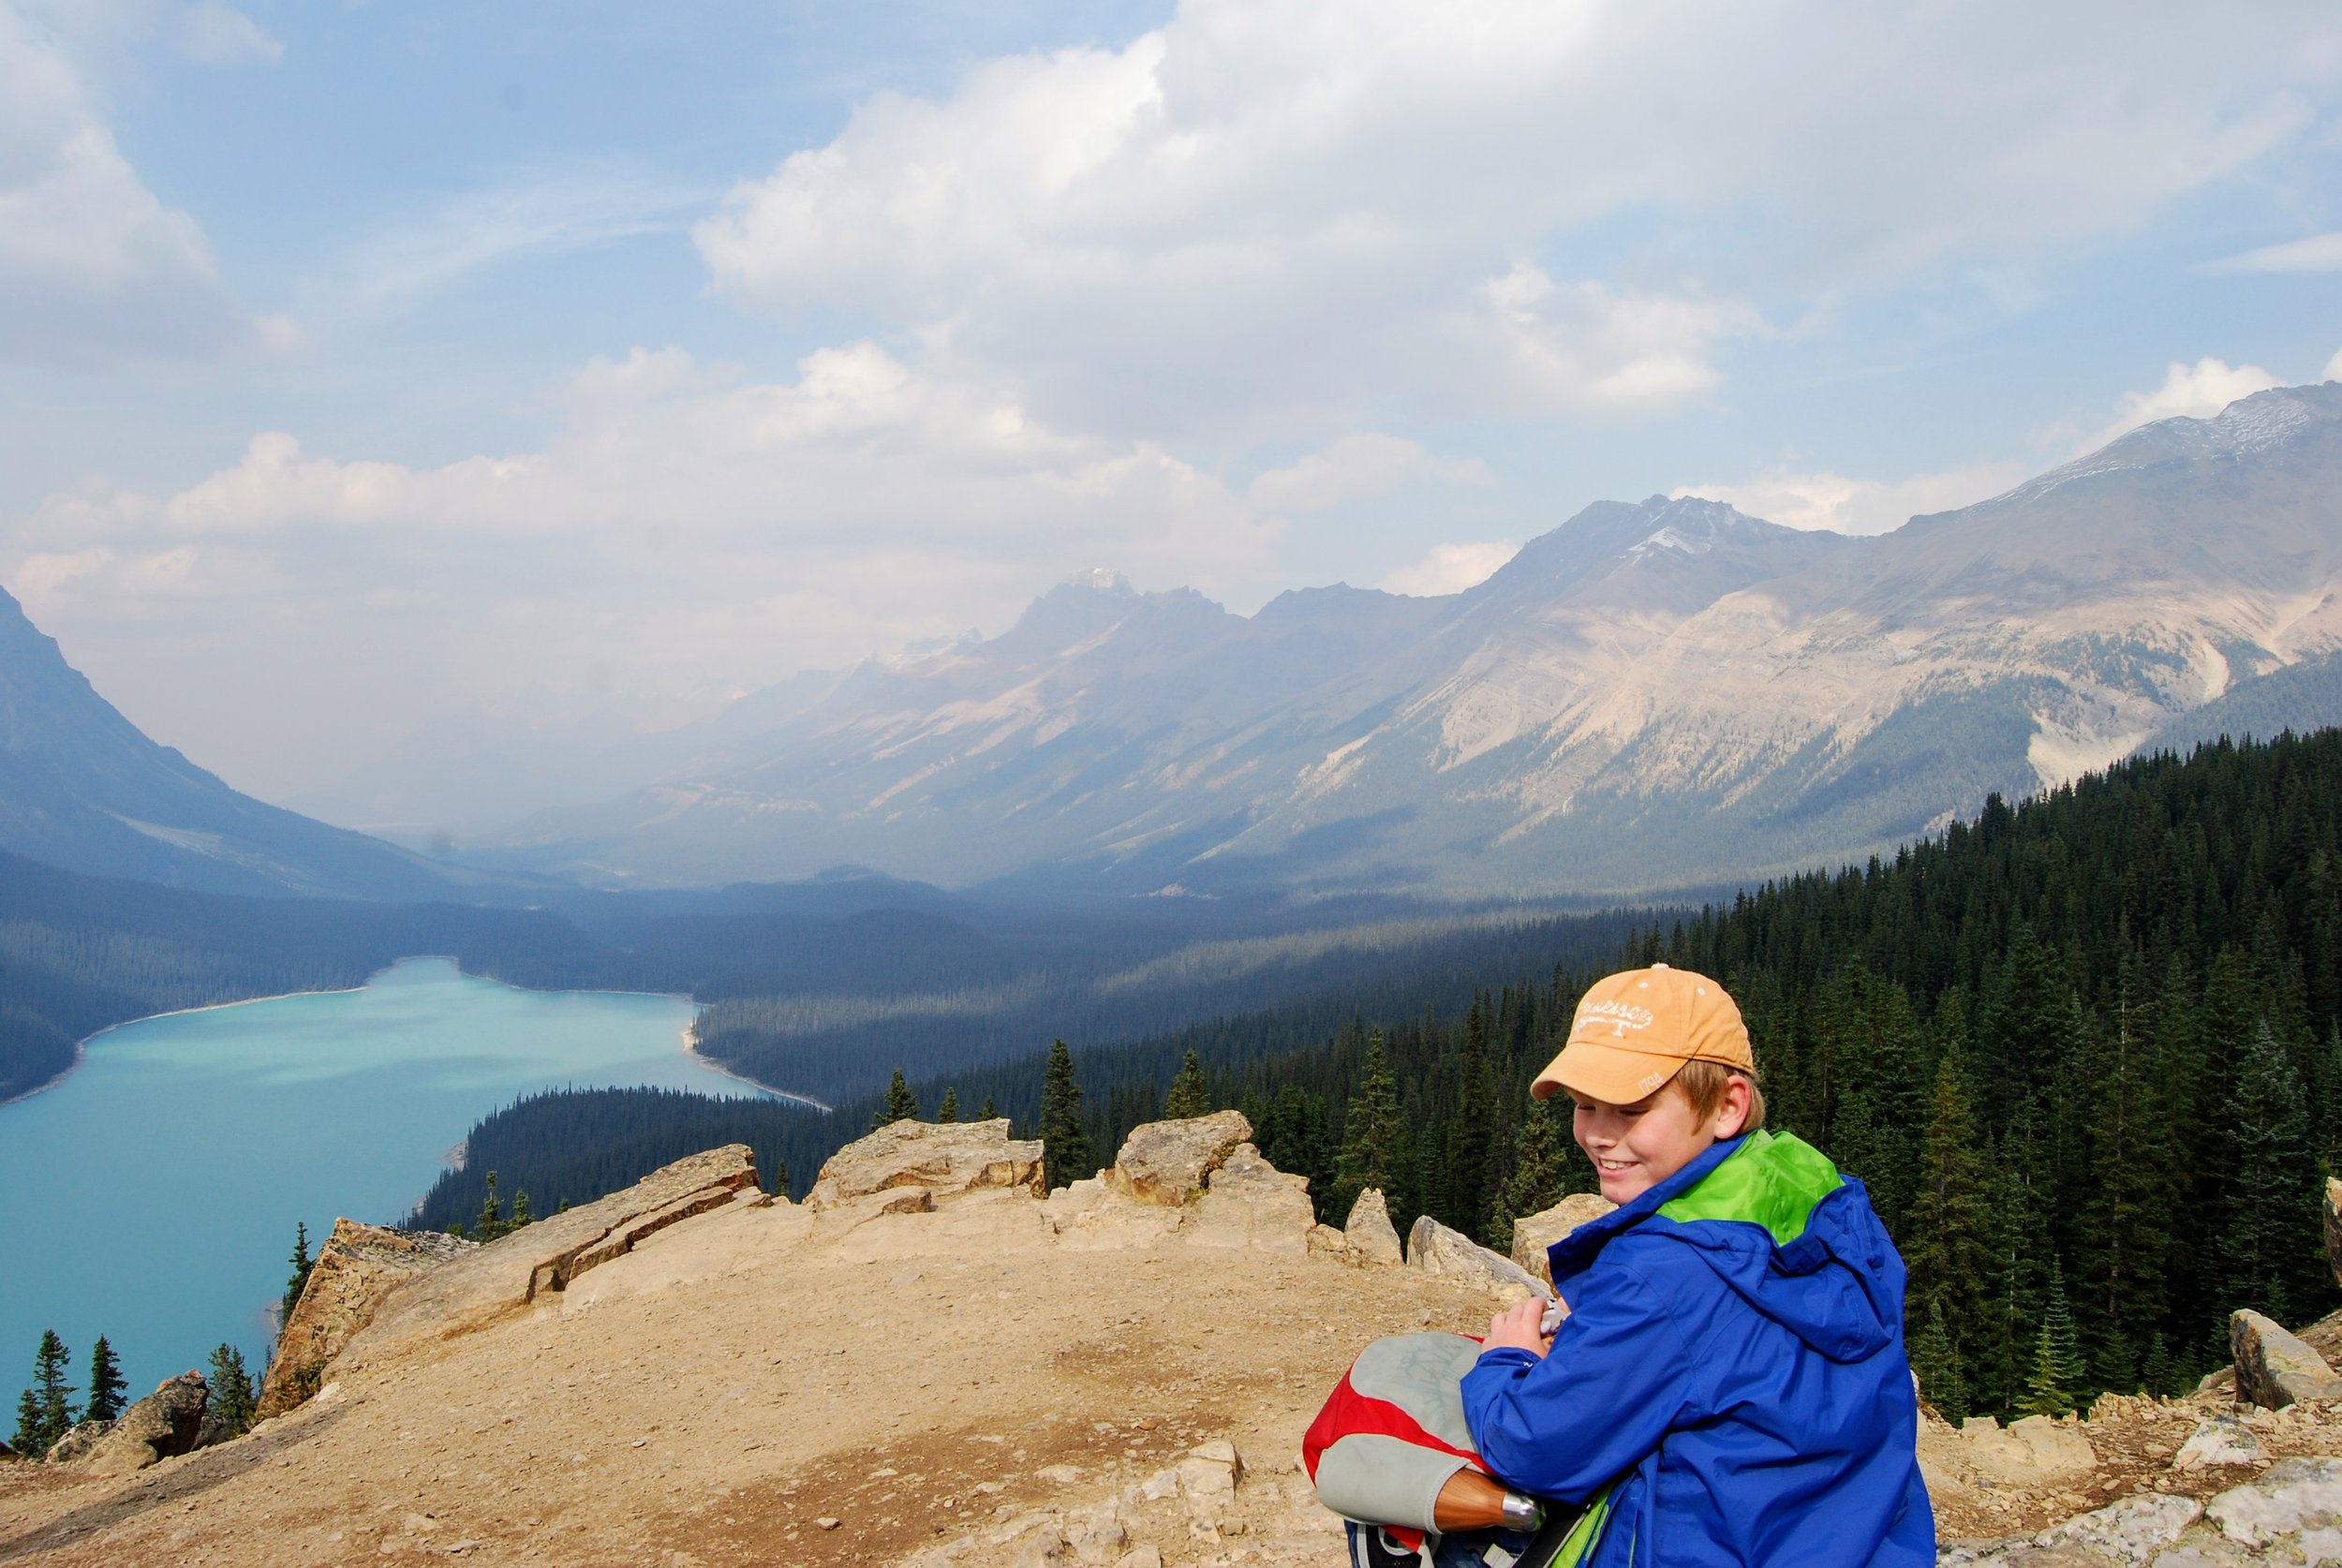 The Osprey and my nephew overlooking Peyto Lake in Banff National Park.